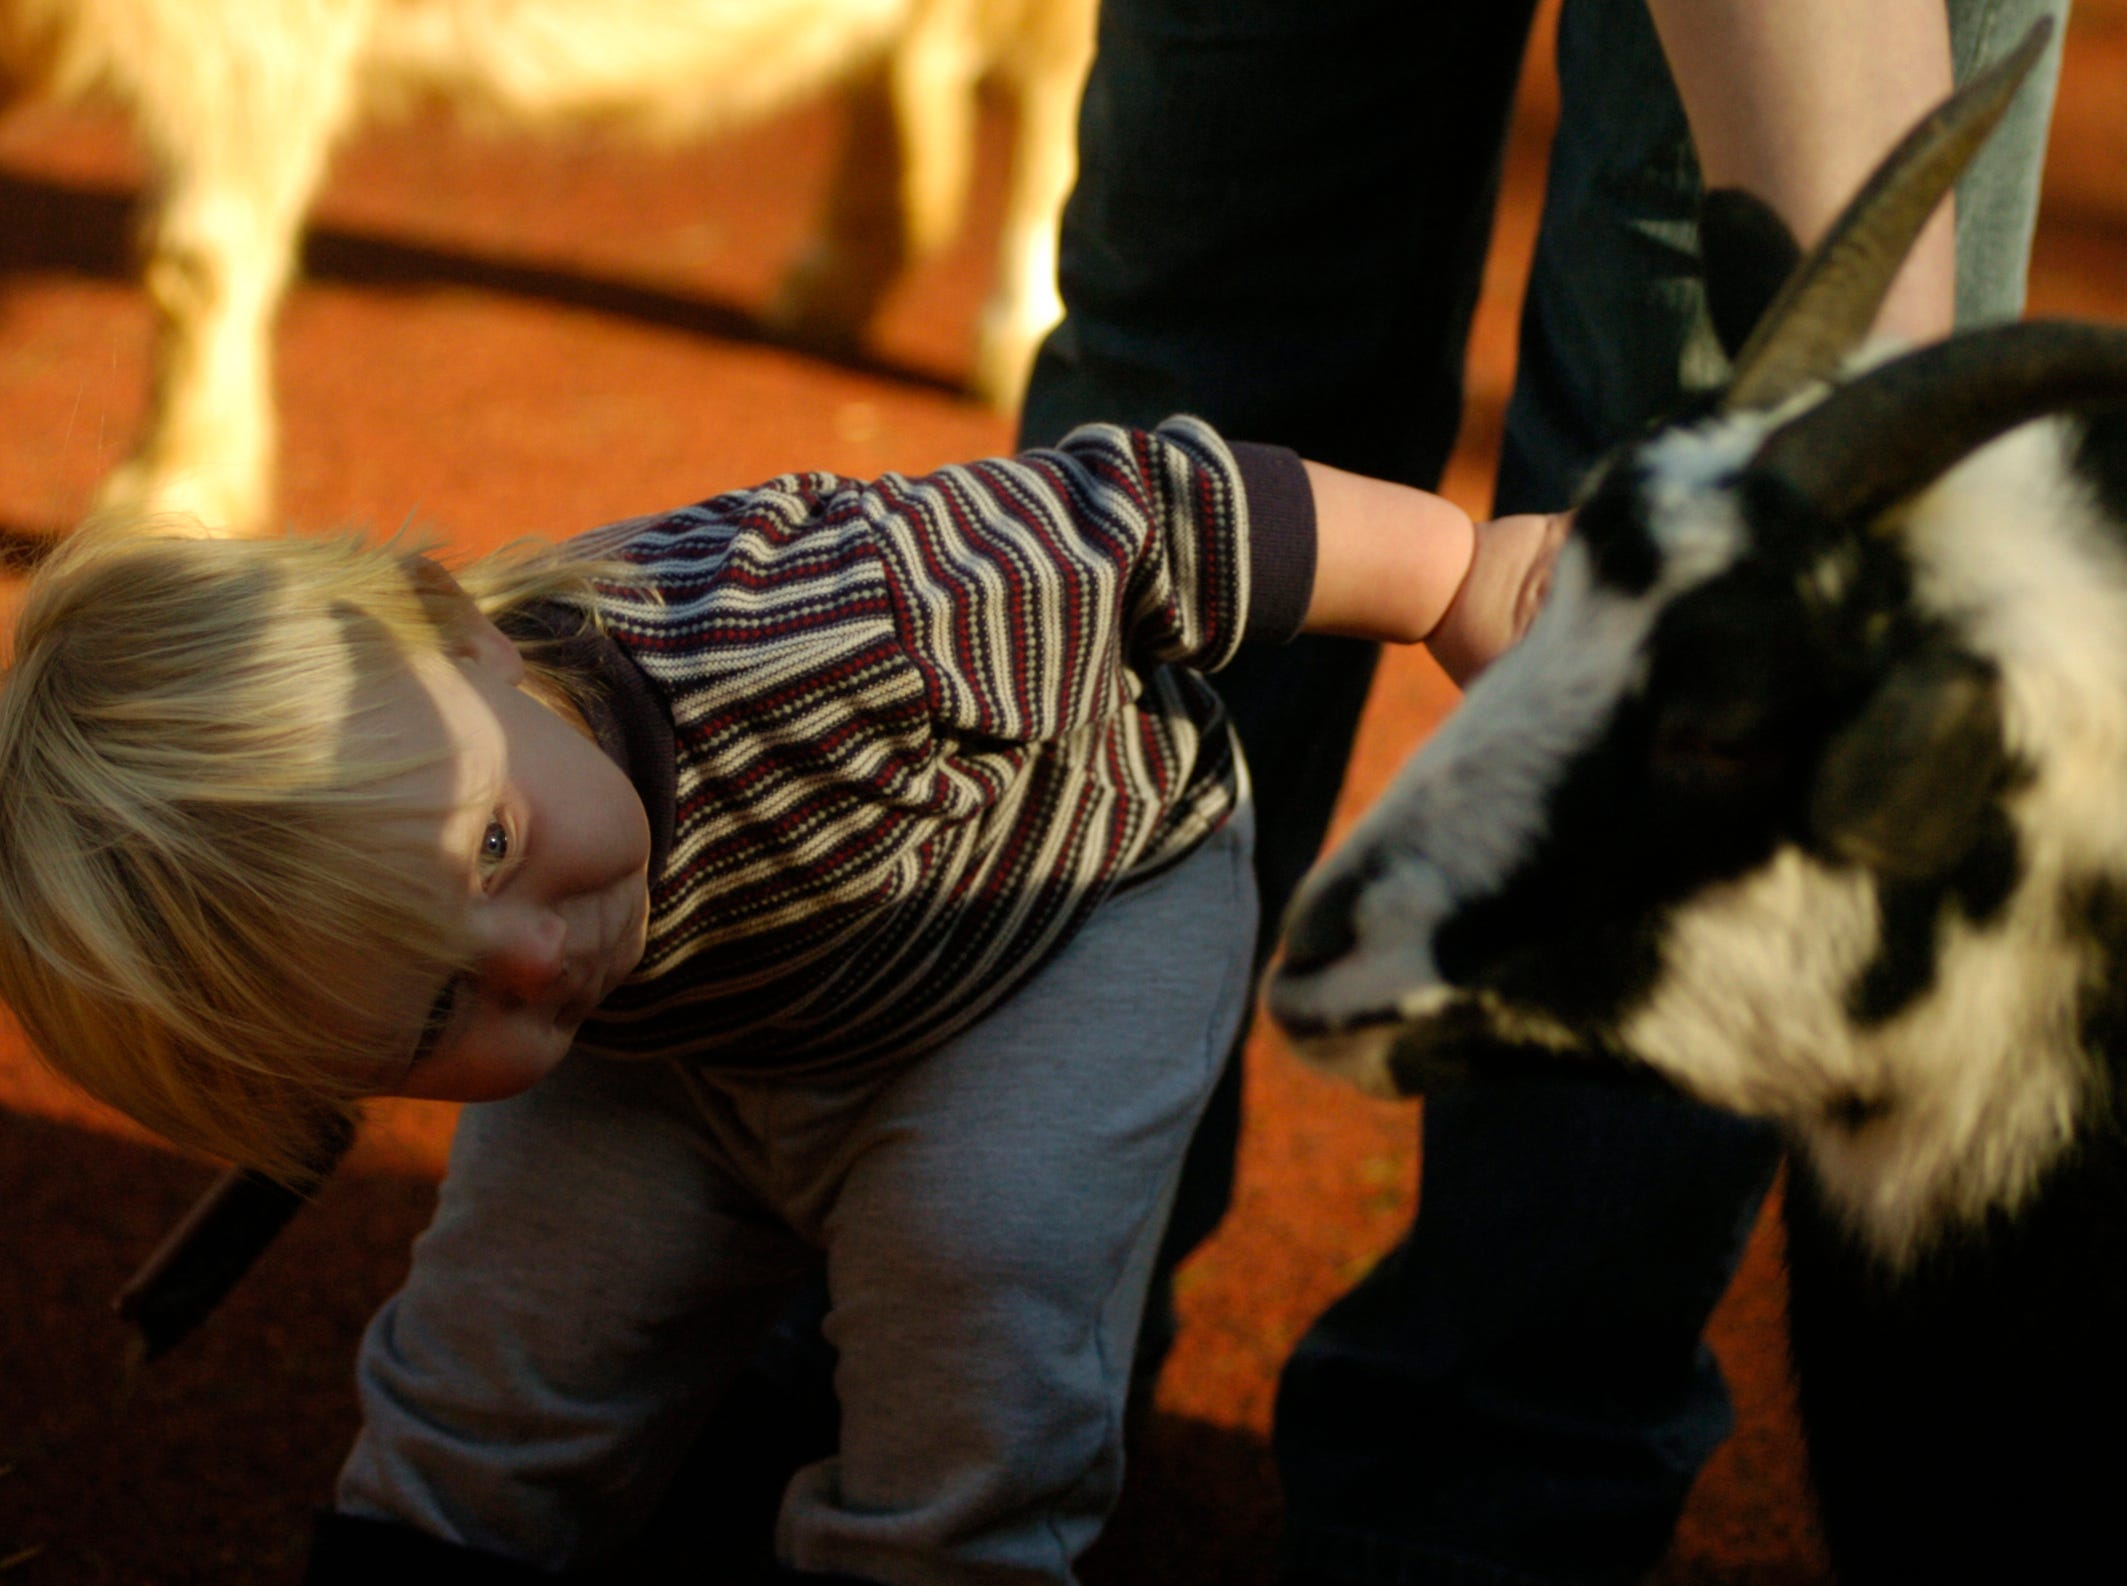 Devon Krippendorf, 18 months, gazes intently at one of the goats at Knoxville Zoo's Kid's Cove petting zoo Thursday. The Knoxville Zoo had more visitors in 2005 than its entire 57-year history. 2006